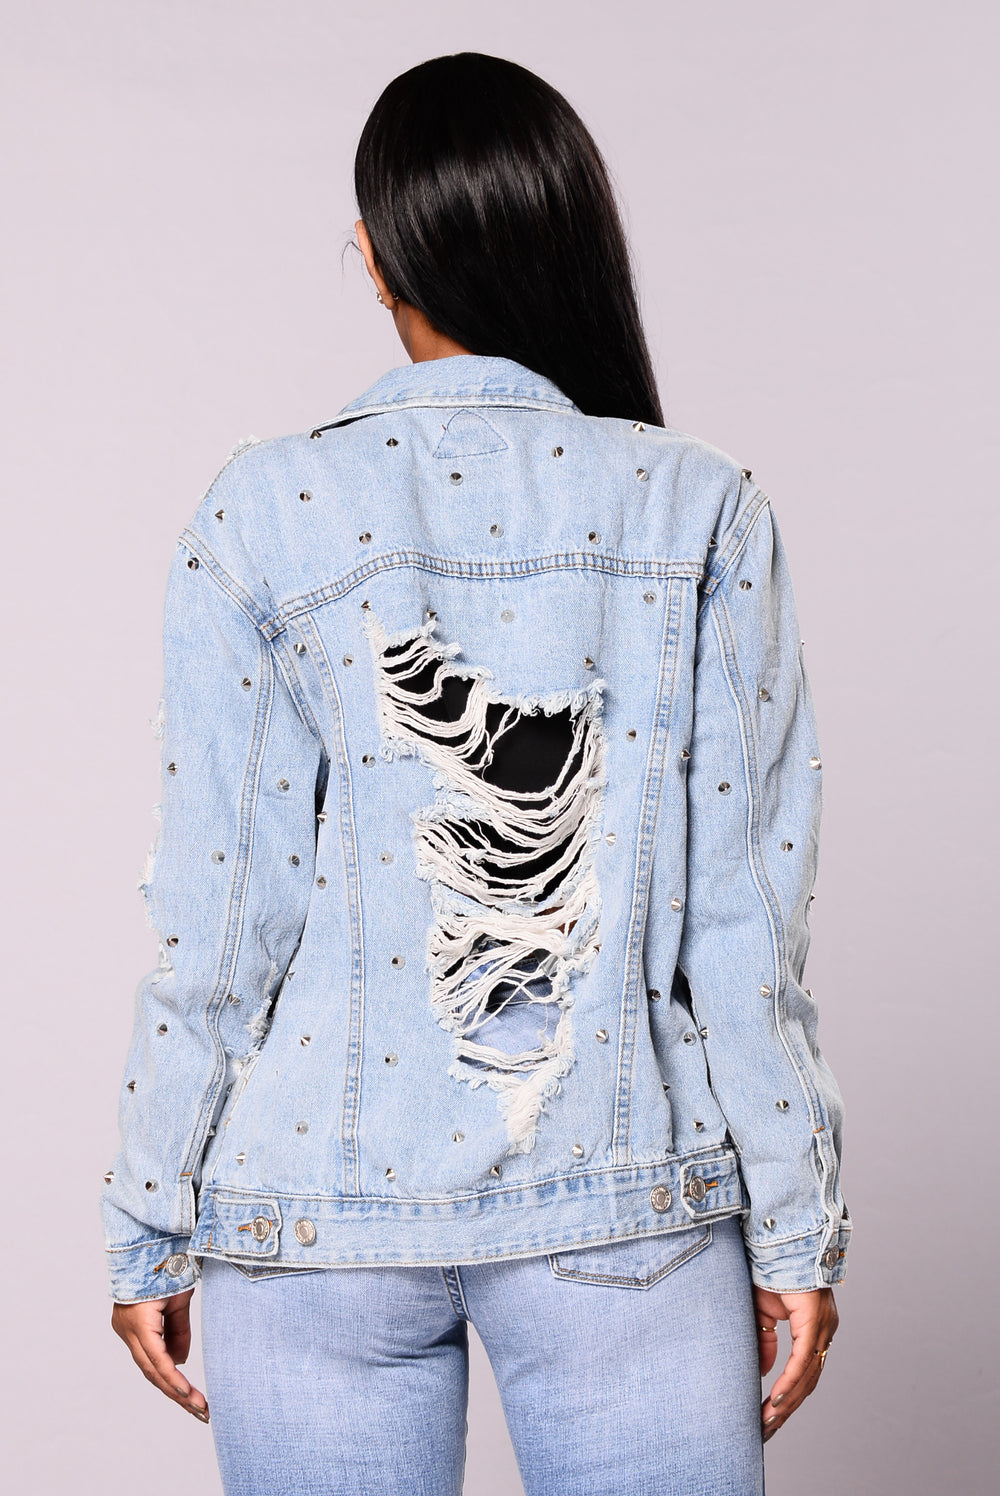 Territorial Denim Jacket - Light Wash